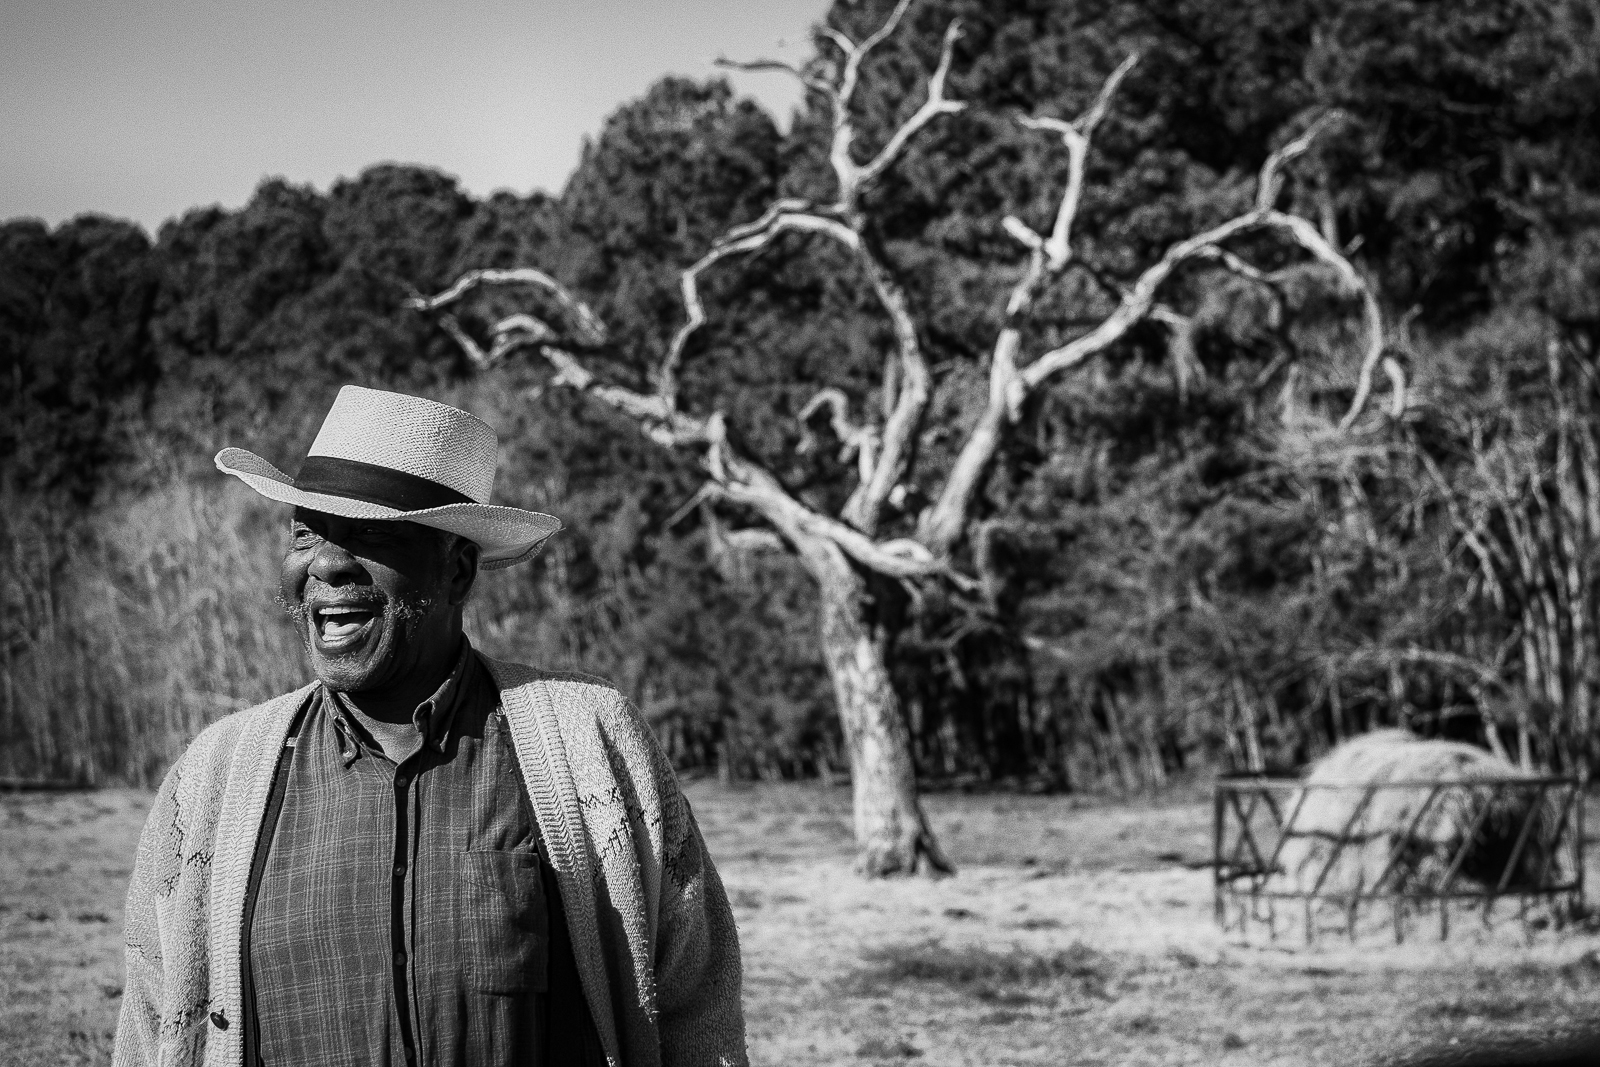 Shadows of the Gullah Geechee Pete Marovich